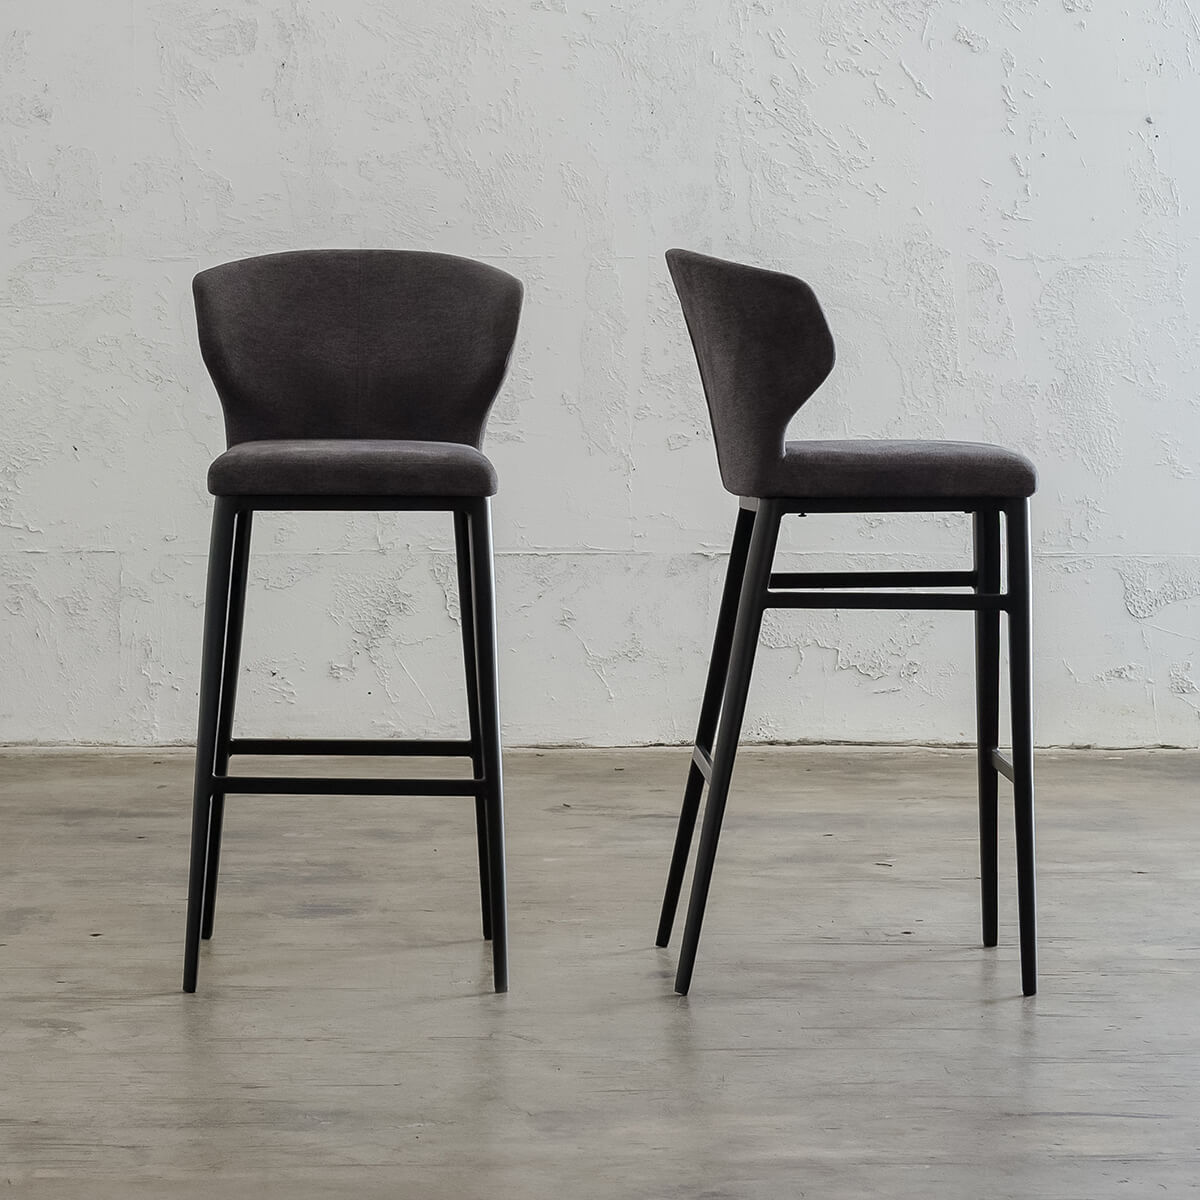 ANDERS BAR STOOL | HERRING GREY LUXE TWILL  |  FABRIC BAR STOOL